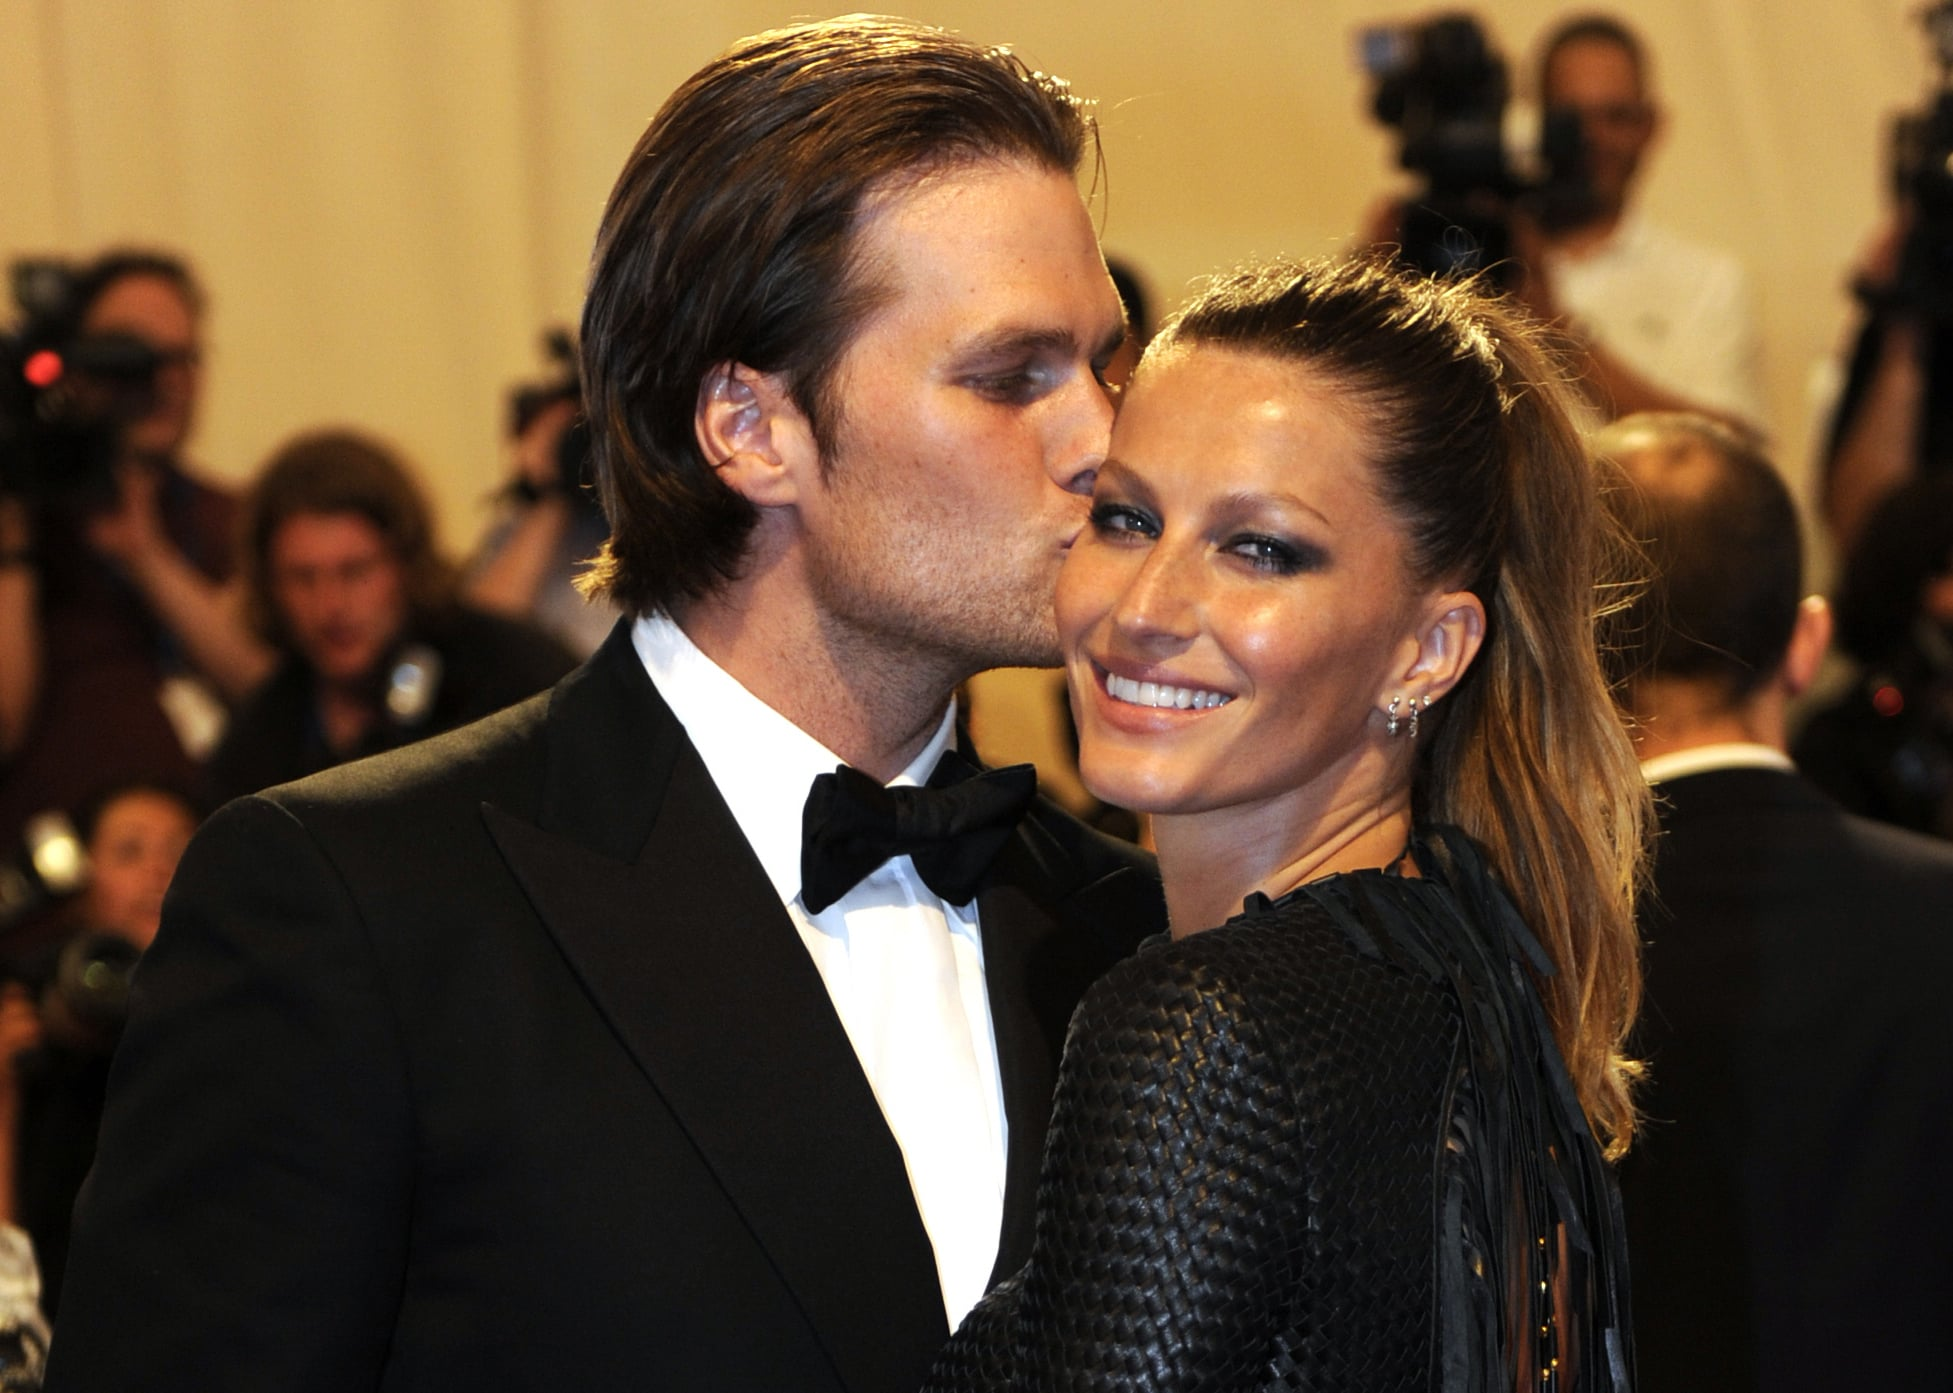 How Did Gisele Bundchen and Tom Brady Meet? | POPSUGAR Celebrity